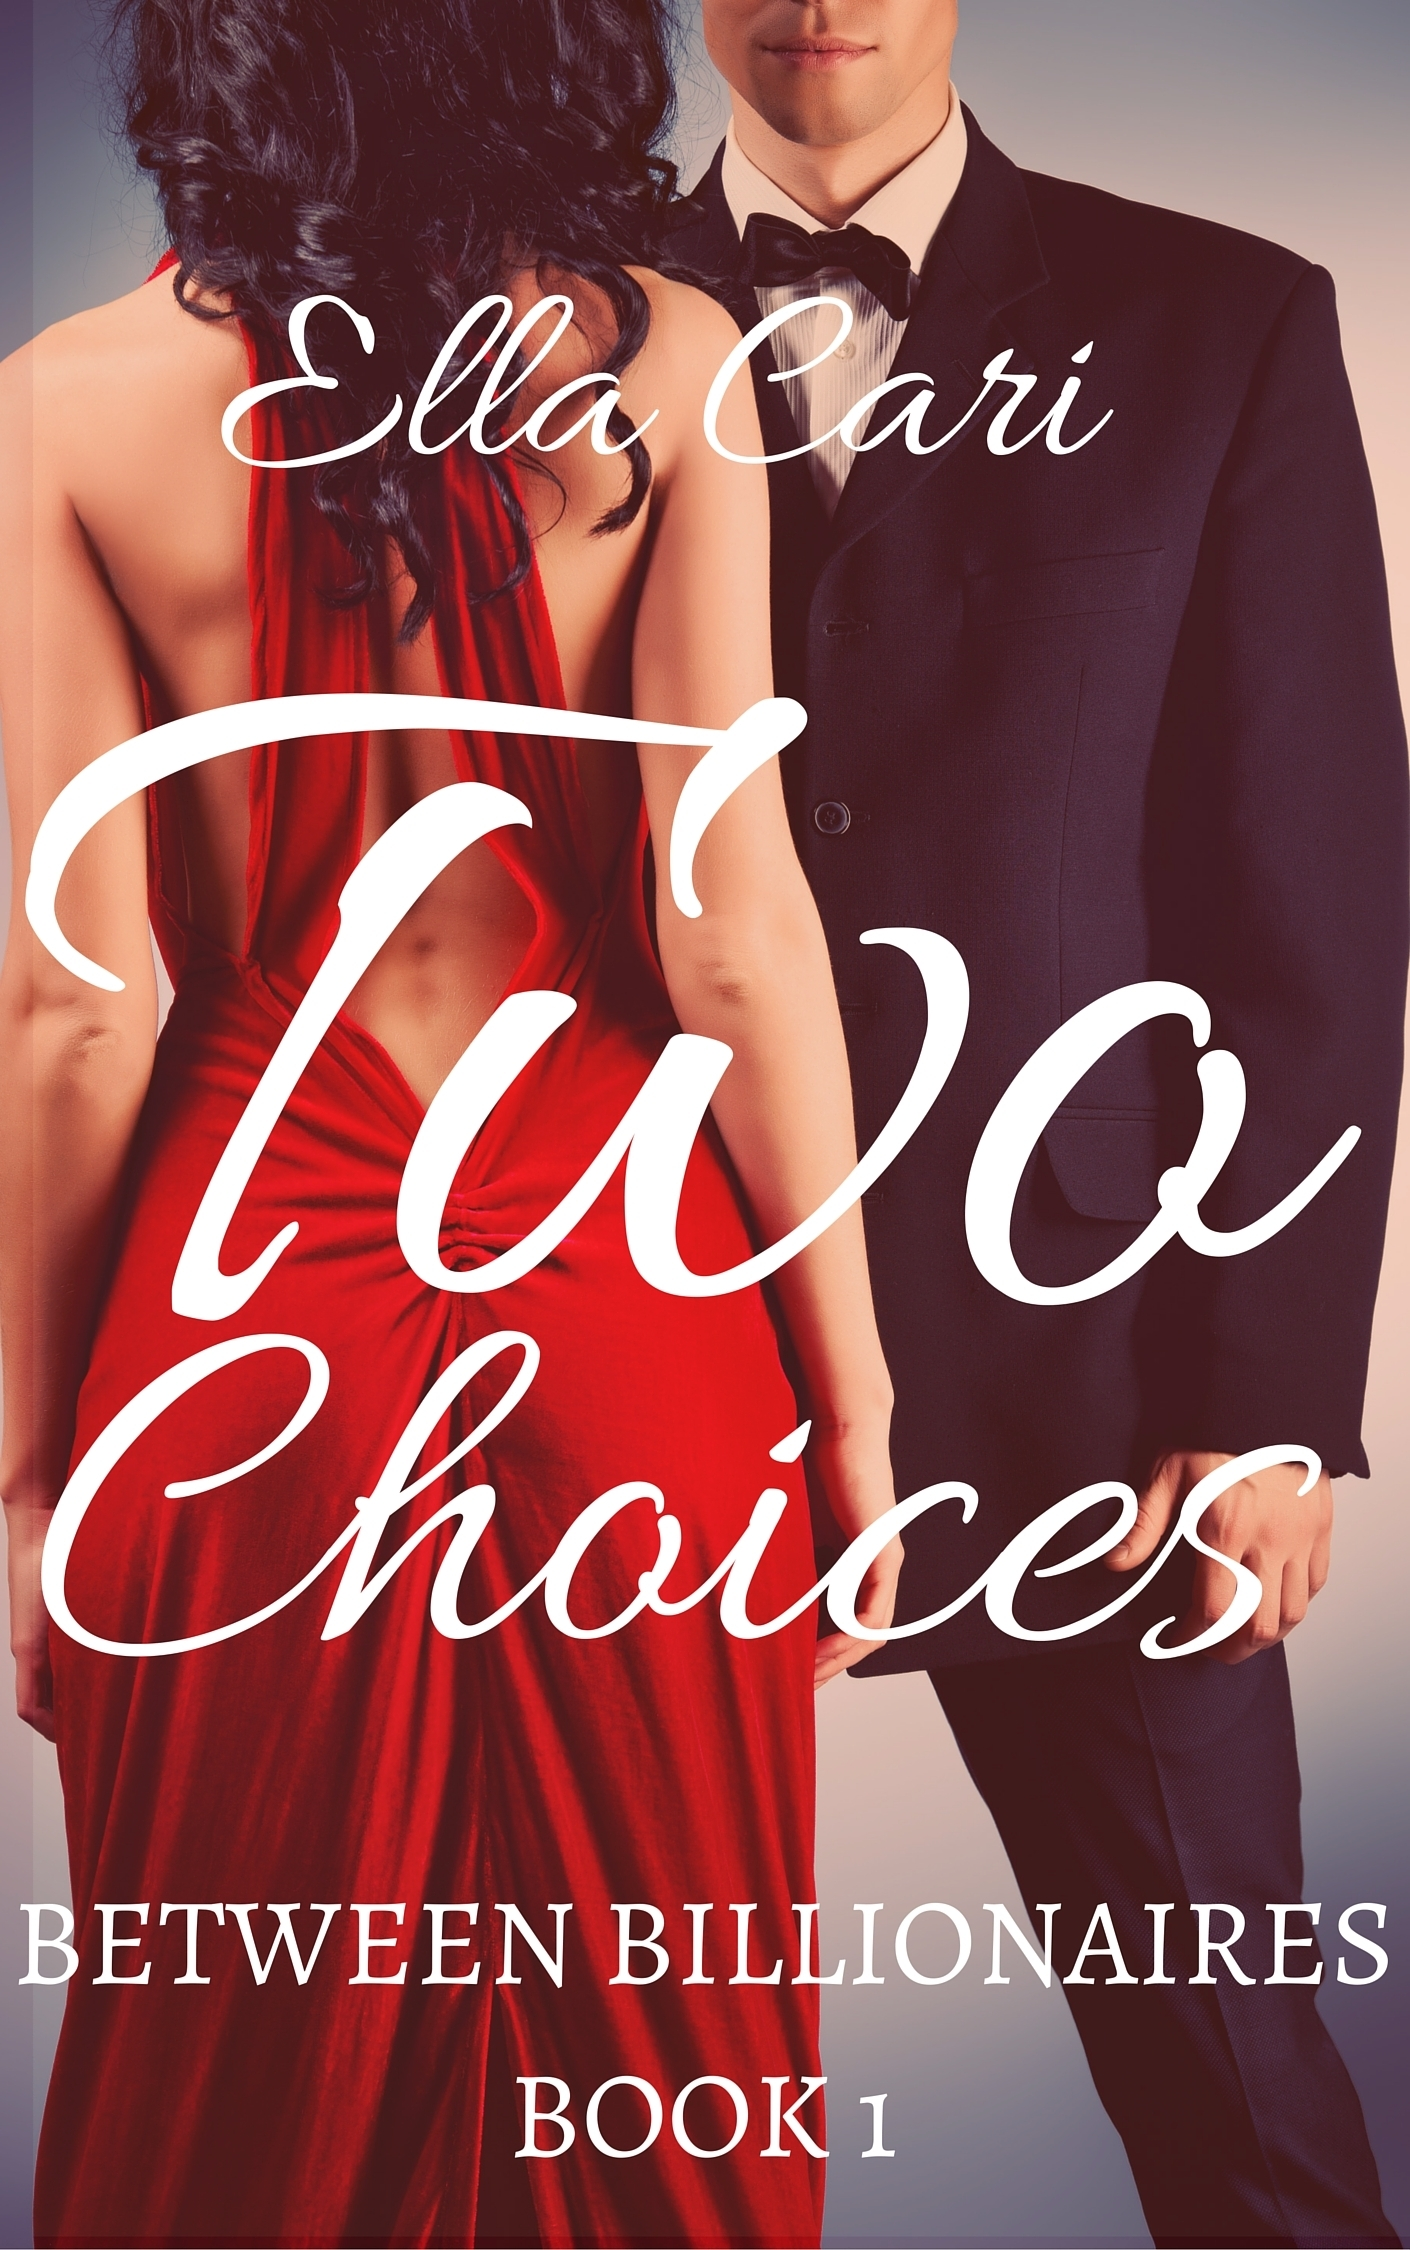 Two Choices (Between Billionaires, Book 1)  by  Ella Cari